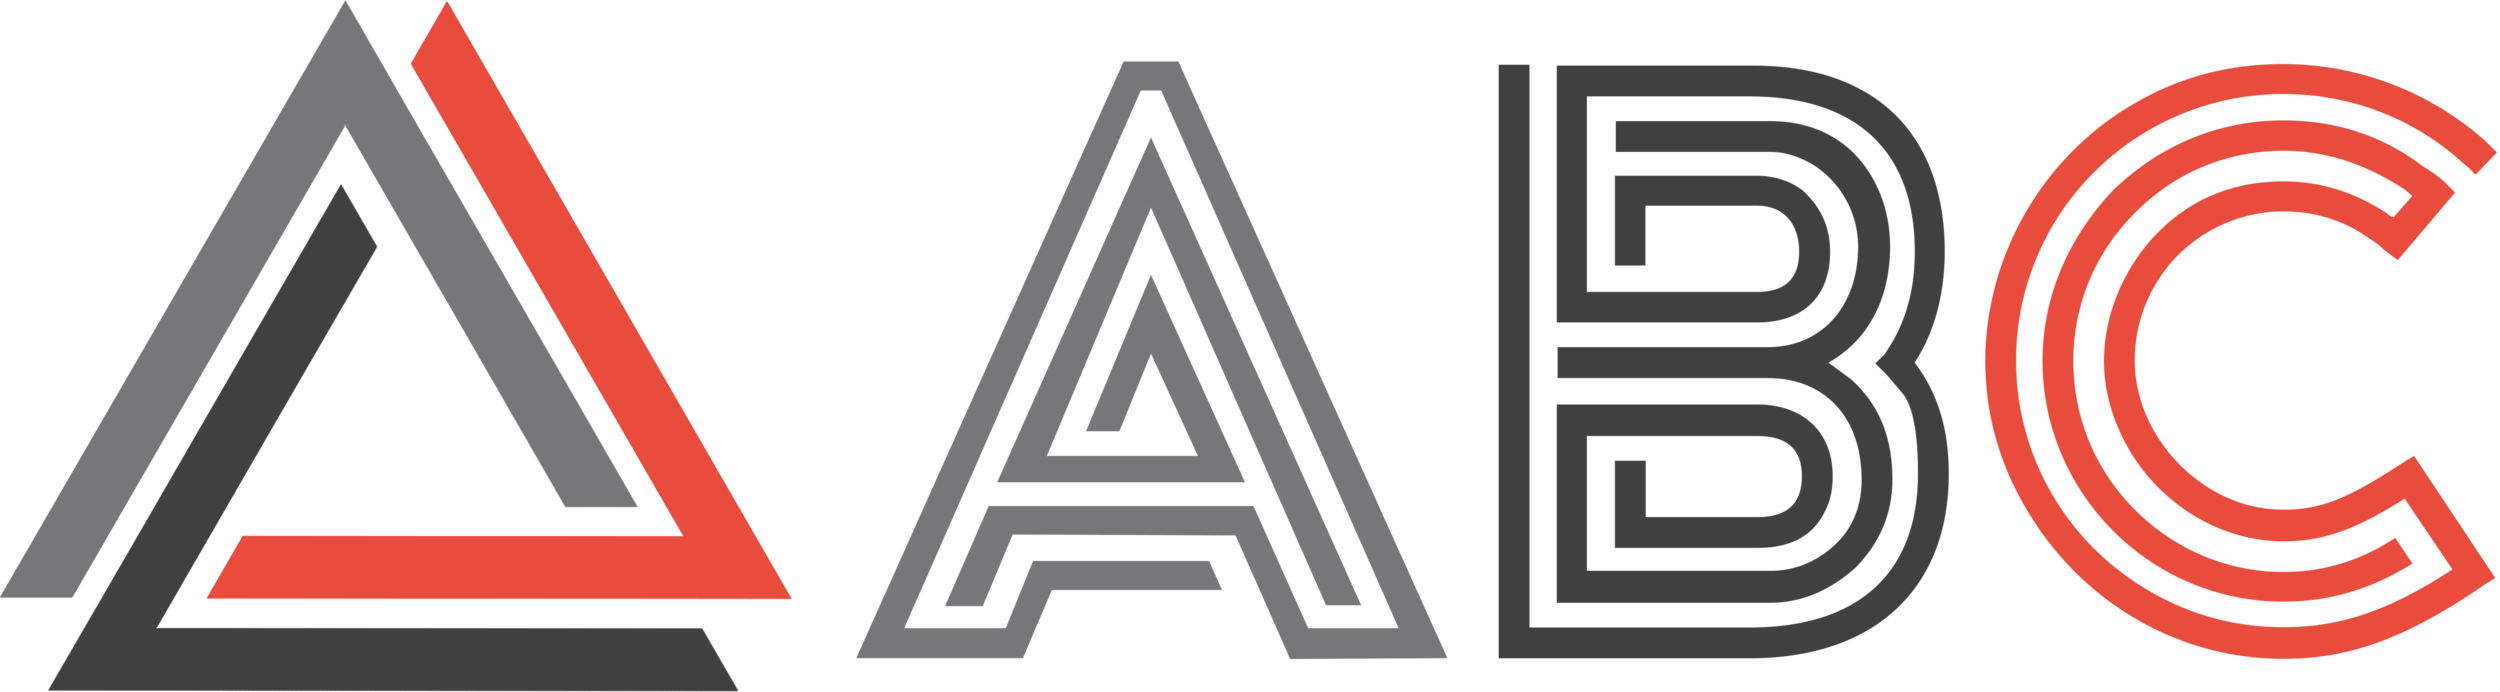 Community Groups ABCs Logo Not Words.png